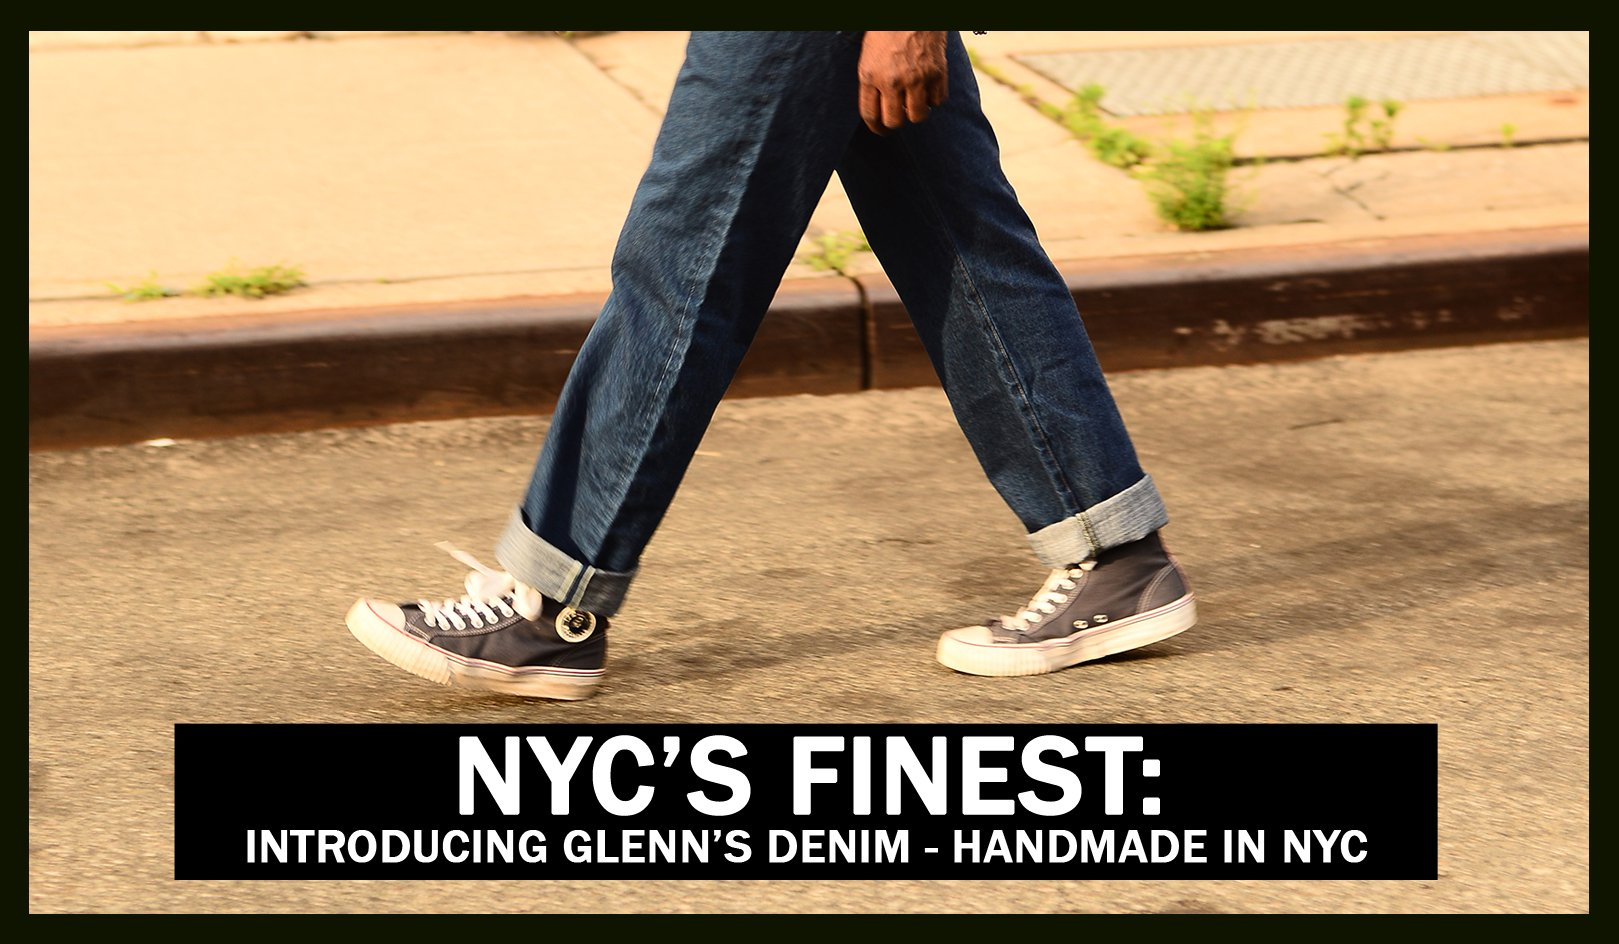 Glenn's Denim